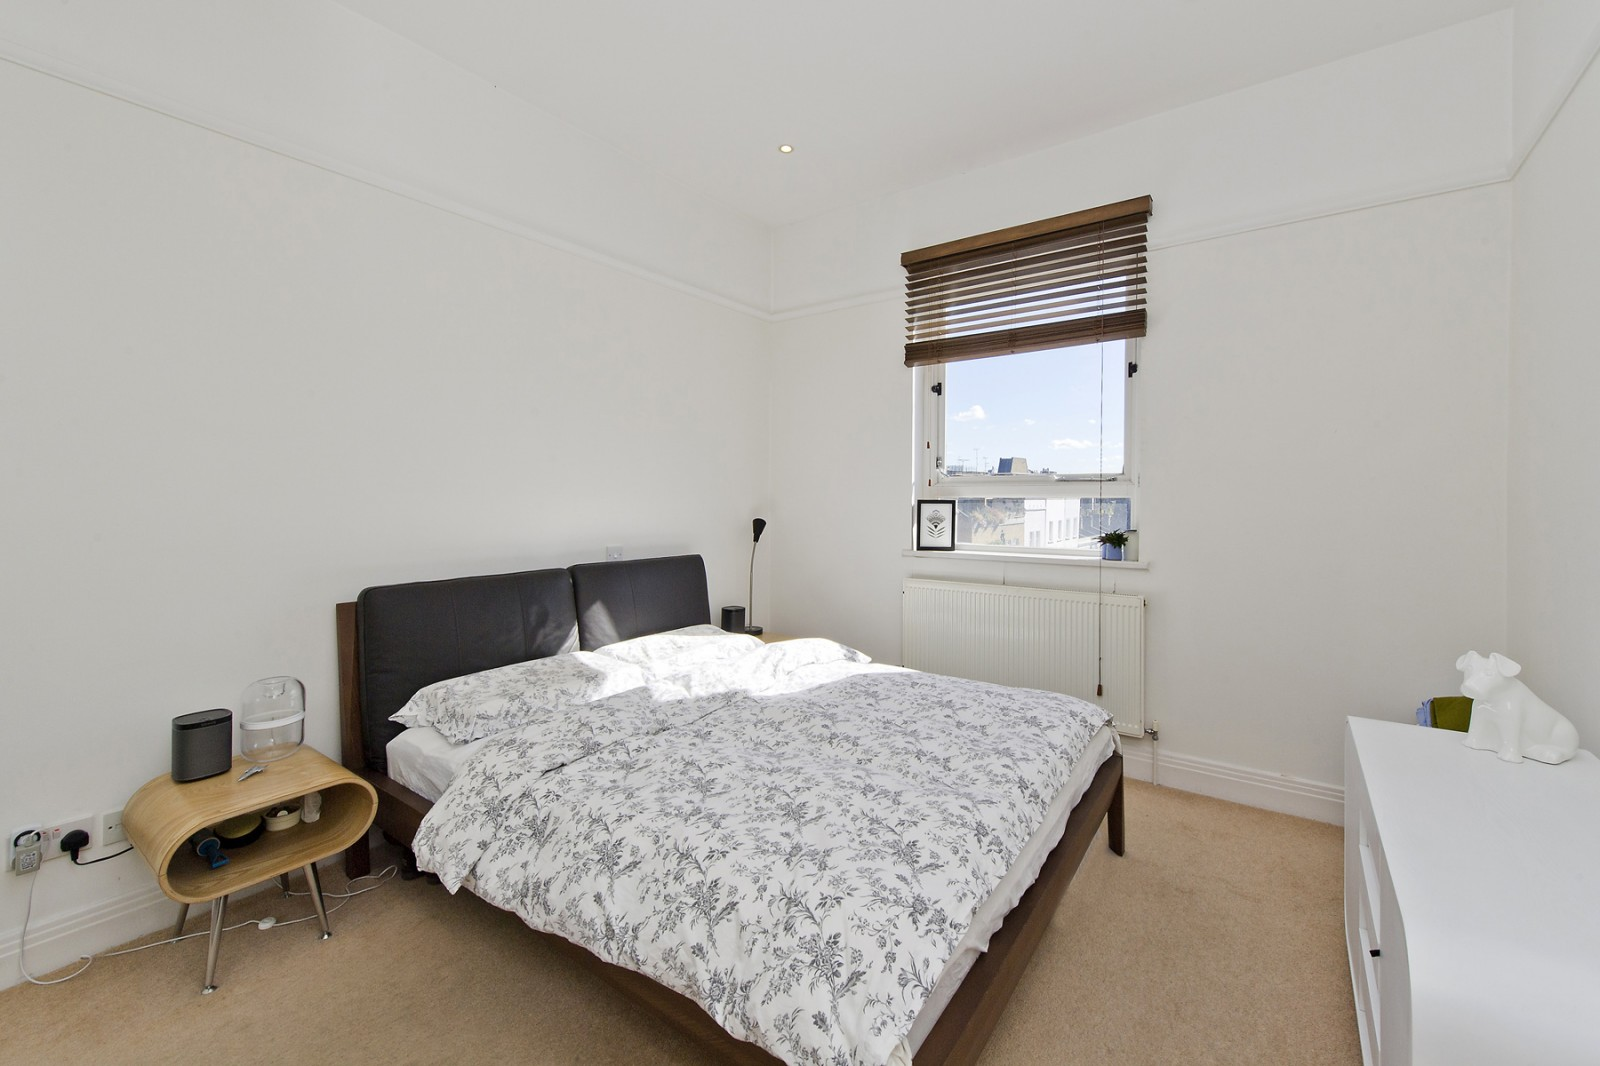 2 bedroom Notting Hill flat to rent - Chepstow Villas, W11